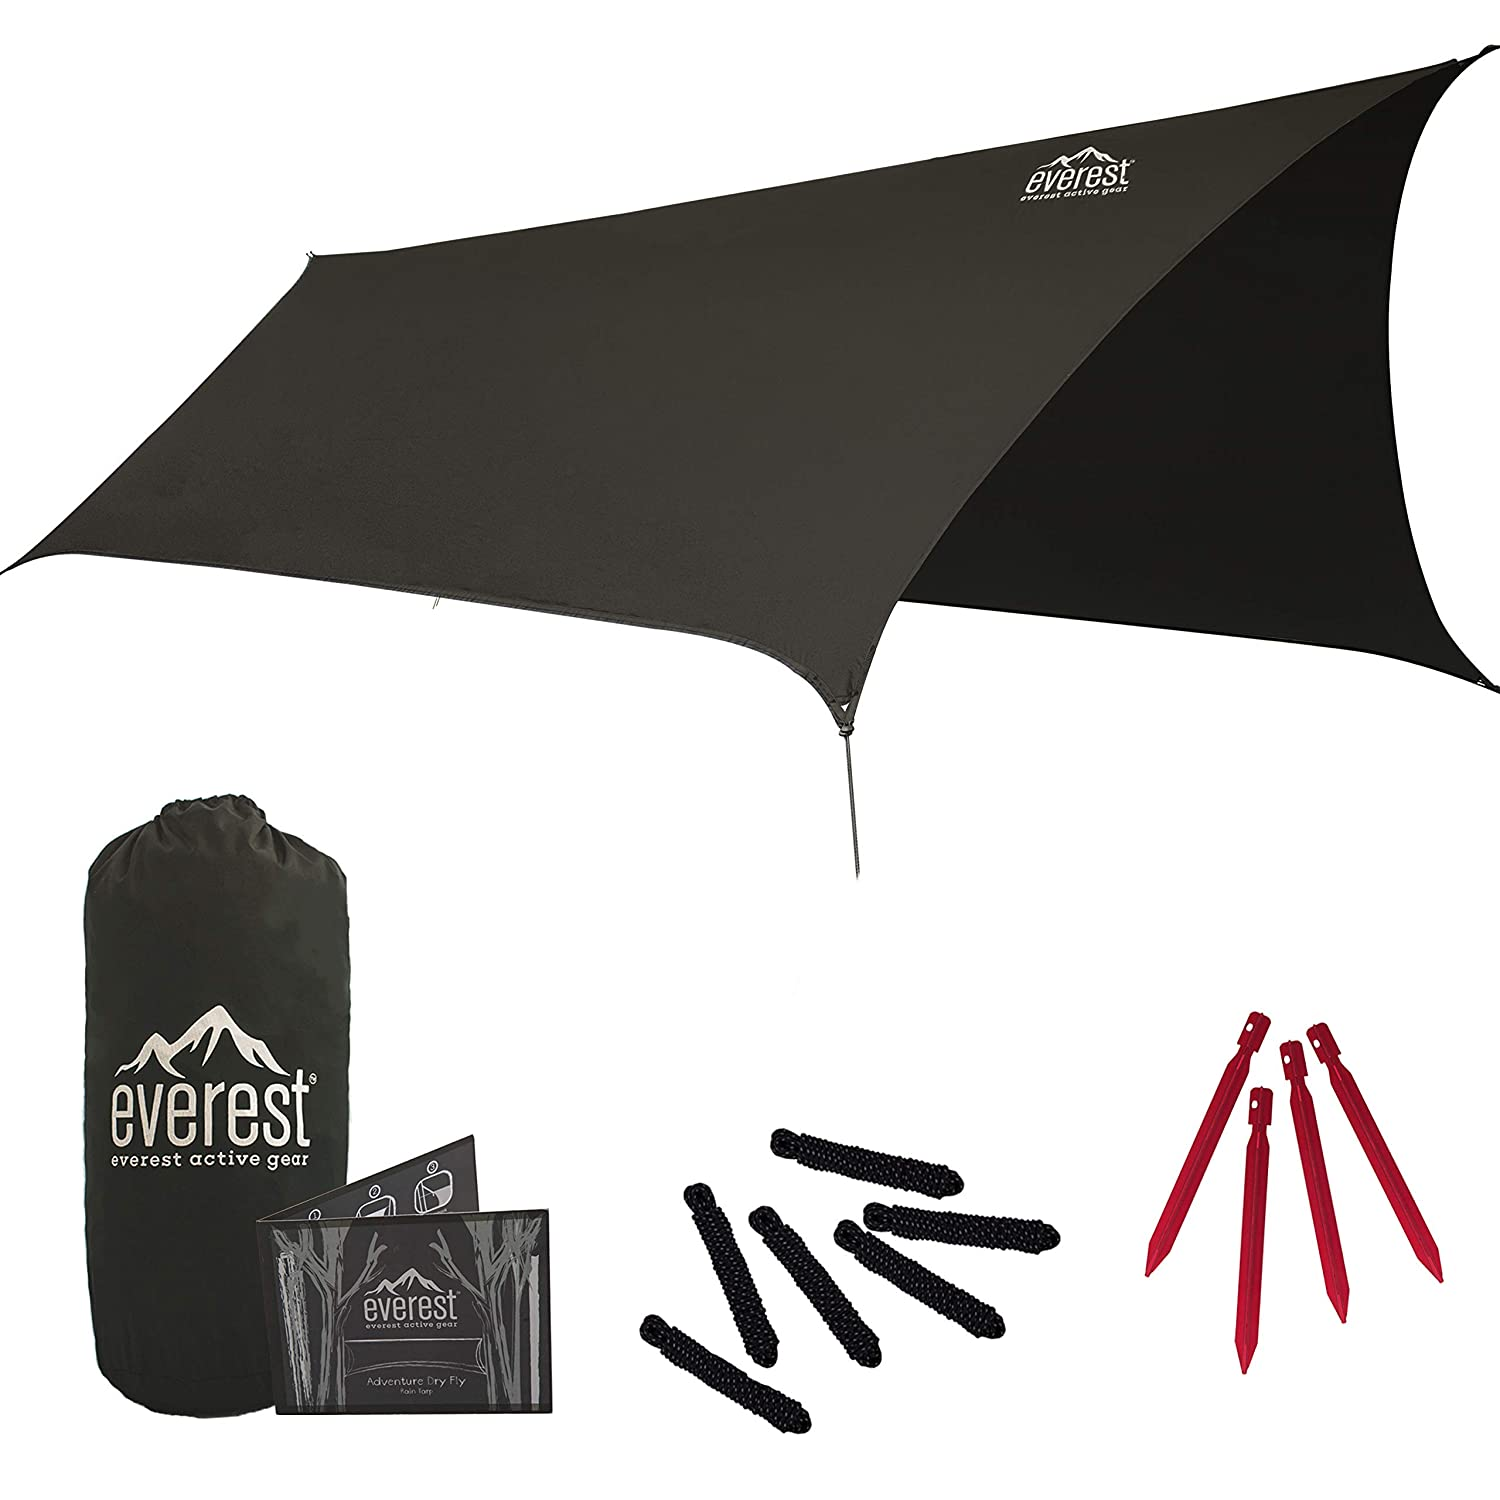 Everest Hammock Rain Fly | Waterproof Outdoor Tarp | Perfect for Camping, Backpacking, Tents, Hammocks, and More | Ripstop Nylon | Lightweight Aluminum Stakes Included- Gray [並行輸入品] B07R4TS87X